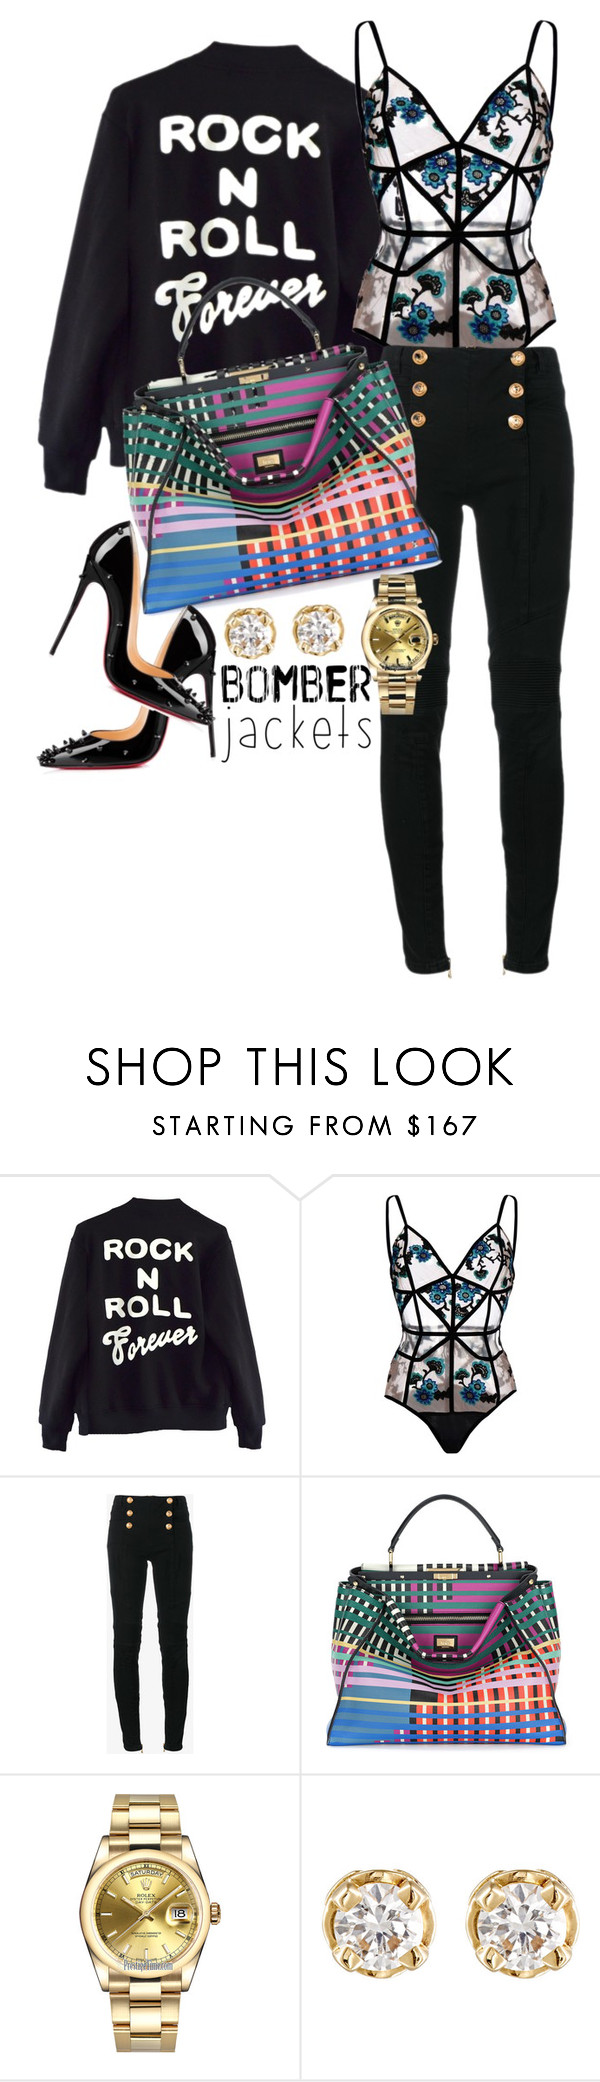 """Forever!!!"" by styledbytammy ❤ liked on Polyvore featuring High Heels Suicide, For Love & Lemons, Balmain, Fendi, Rolex, Hoorsenbuhs and Christian Louboutin"